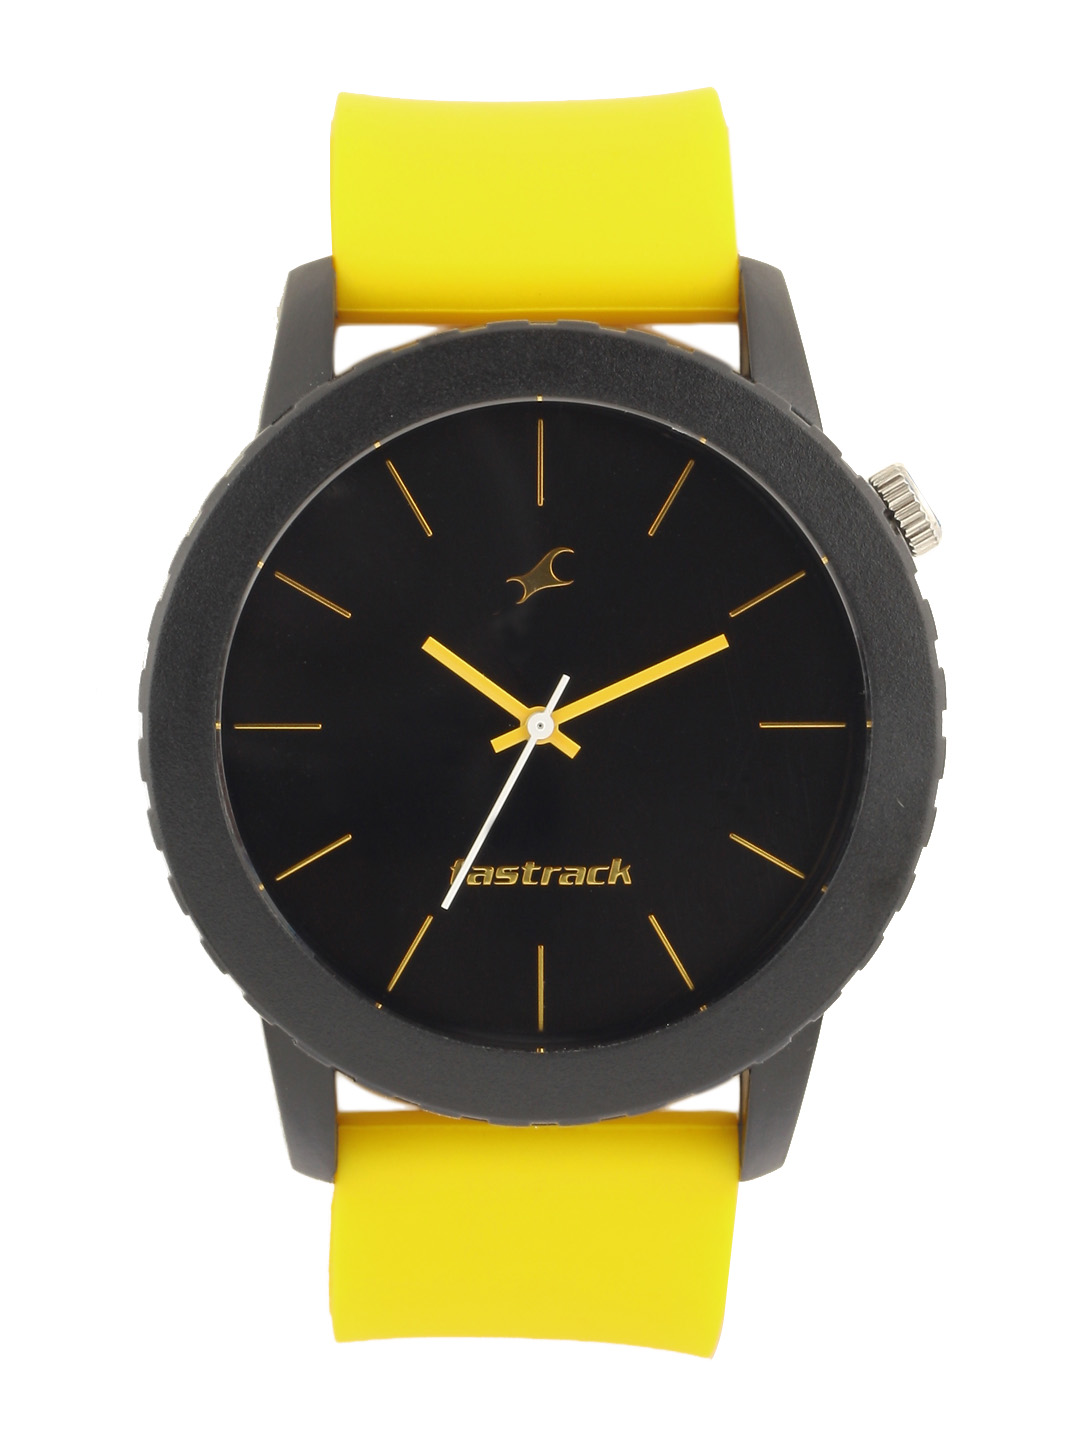 pest fastrack watches Buy hicare cockroach mgmt 1 bhk - 6 service - 2 year pest control contract online at low prices in india shop online for hicare cockroach mgmt 1 bhk - 6 service - 2 year pest control contract on snapdeal and get free shipping.